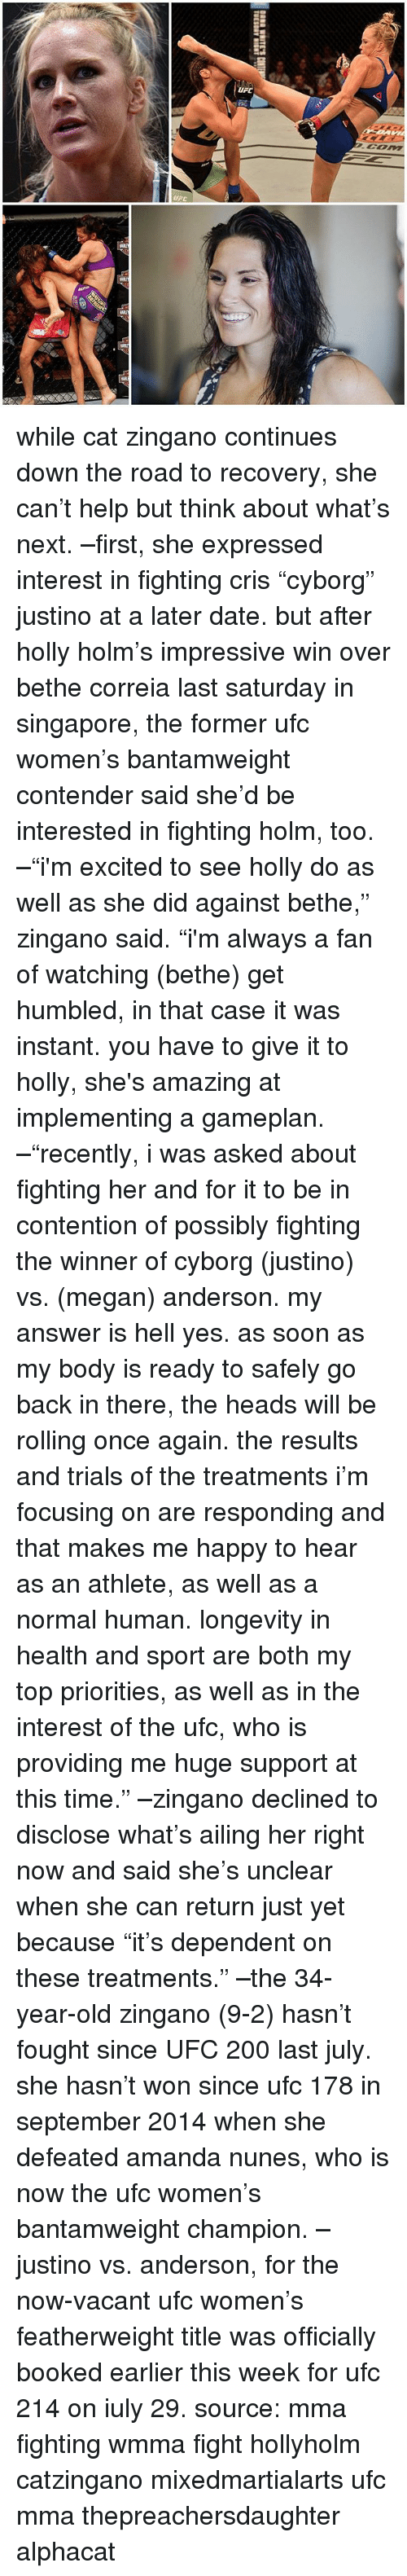 """zingano: while cat zingano continues down the road to recovery, she can't help but think about what's next. –first, she expressed interest in fighting cris """"cyborg"""" justino at a later date. but after holly holm's impressive win over bethe correia last saturday in singapore, the former ufc women's bantamweight contender said she'd be interested in fighting holm, too. –""""i'm excited to see holly do as well as she did against bethe,"""" zingano said. """"i'm always a fan of watching (bethe) get humbled, in that case it was instant. you have to give it to holly, she's amazing at implementing a gameplan. –""""recently, i was asked about fighting her and for it to be in contention of possibly fighting the winner of cyborg (justino) vs. (megan) anderson. my answer is hell yes. as soon as my body is ready to safely go back in there, the heads will be rolling once again. the results and trials of the treatments i'm focusing on are responding and that makes me happy to hear as an athlete, as well as a normal human. longevity in health and sport are both my top priorities, as well as in the interest of the ufc, who is providing me huge support at this time."""" –zingano declined to disclose what's ailing her right now and said she's unclear when she can return just yet because """"it's dependent on these treatments."""" –the 34-year-old zingano (9-2) hasn't fought since UFC 200 last july. she hasn't won since ufc 178 in september 2014 when she defeated amanda nunes, who is now the ufc women's bantamweight champion. –justino vs. anderson, for the now-vacant ufc women's featherweight title was officially booked earlier this week for ufc 214 on iuly 29. source: mma fighting wmma fight hollyholm catzingano mixedmartialarts ufc mma thepreachersdaughter alphacat"""